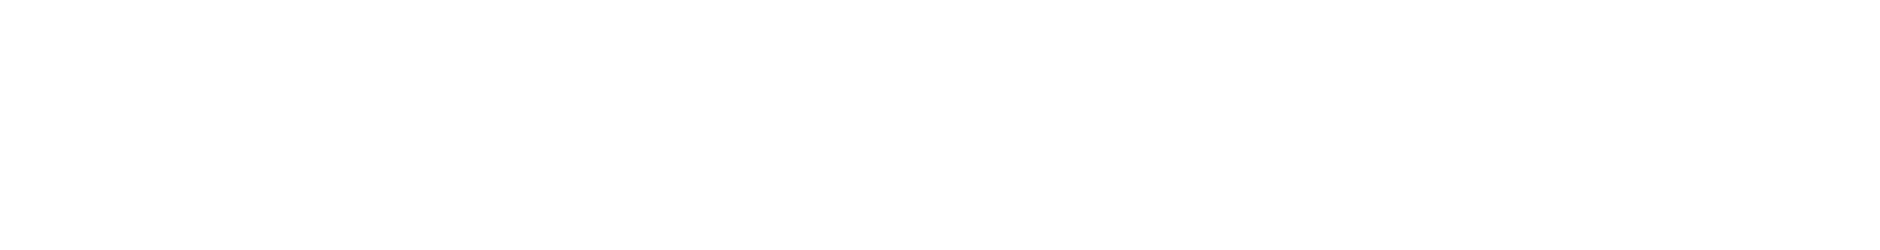 Byron Lars Beauty Mark